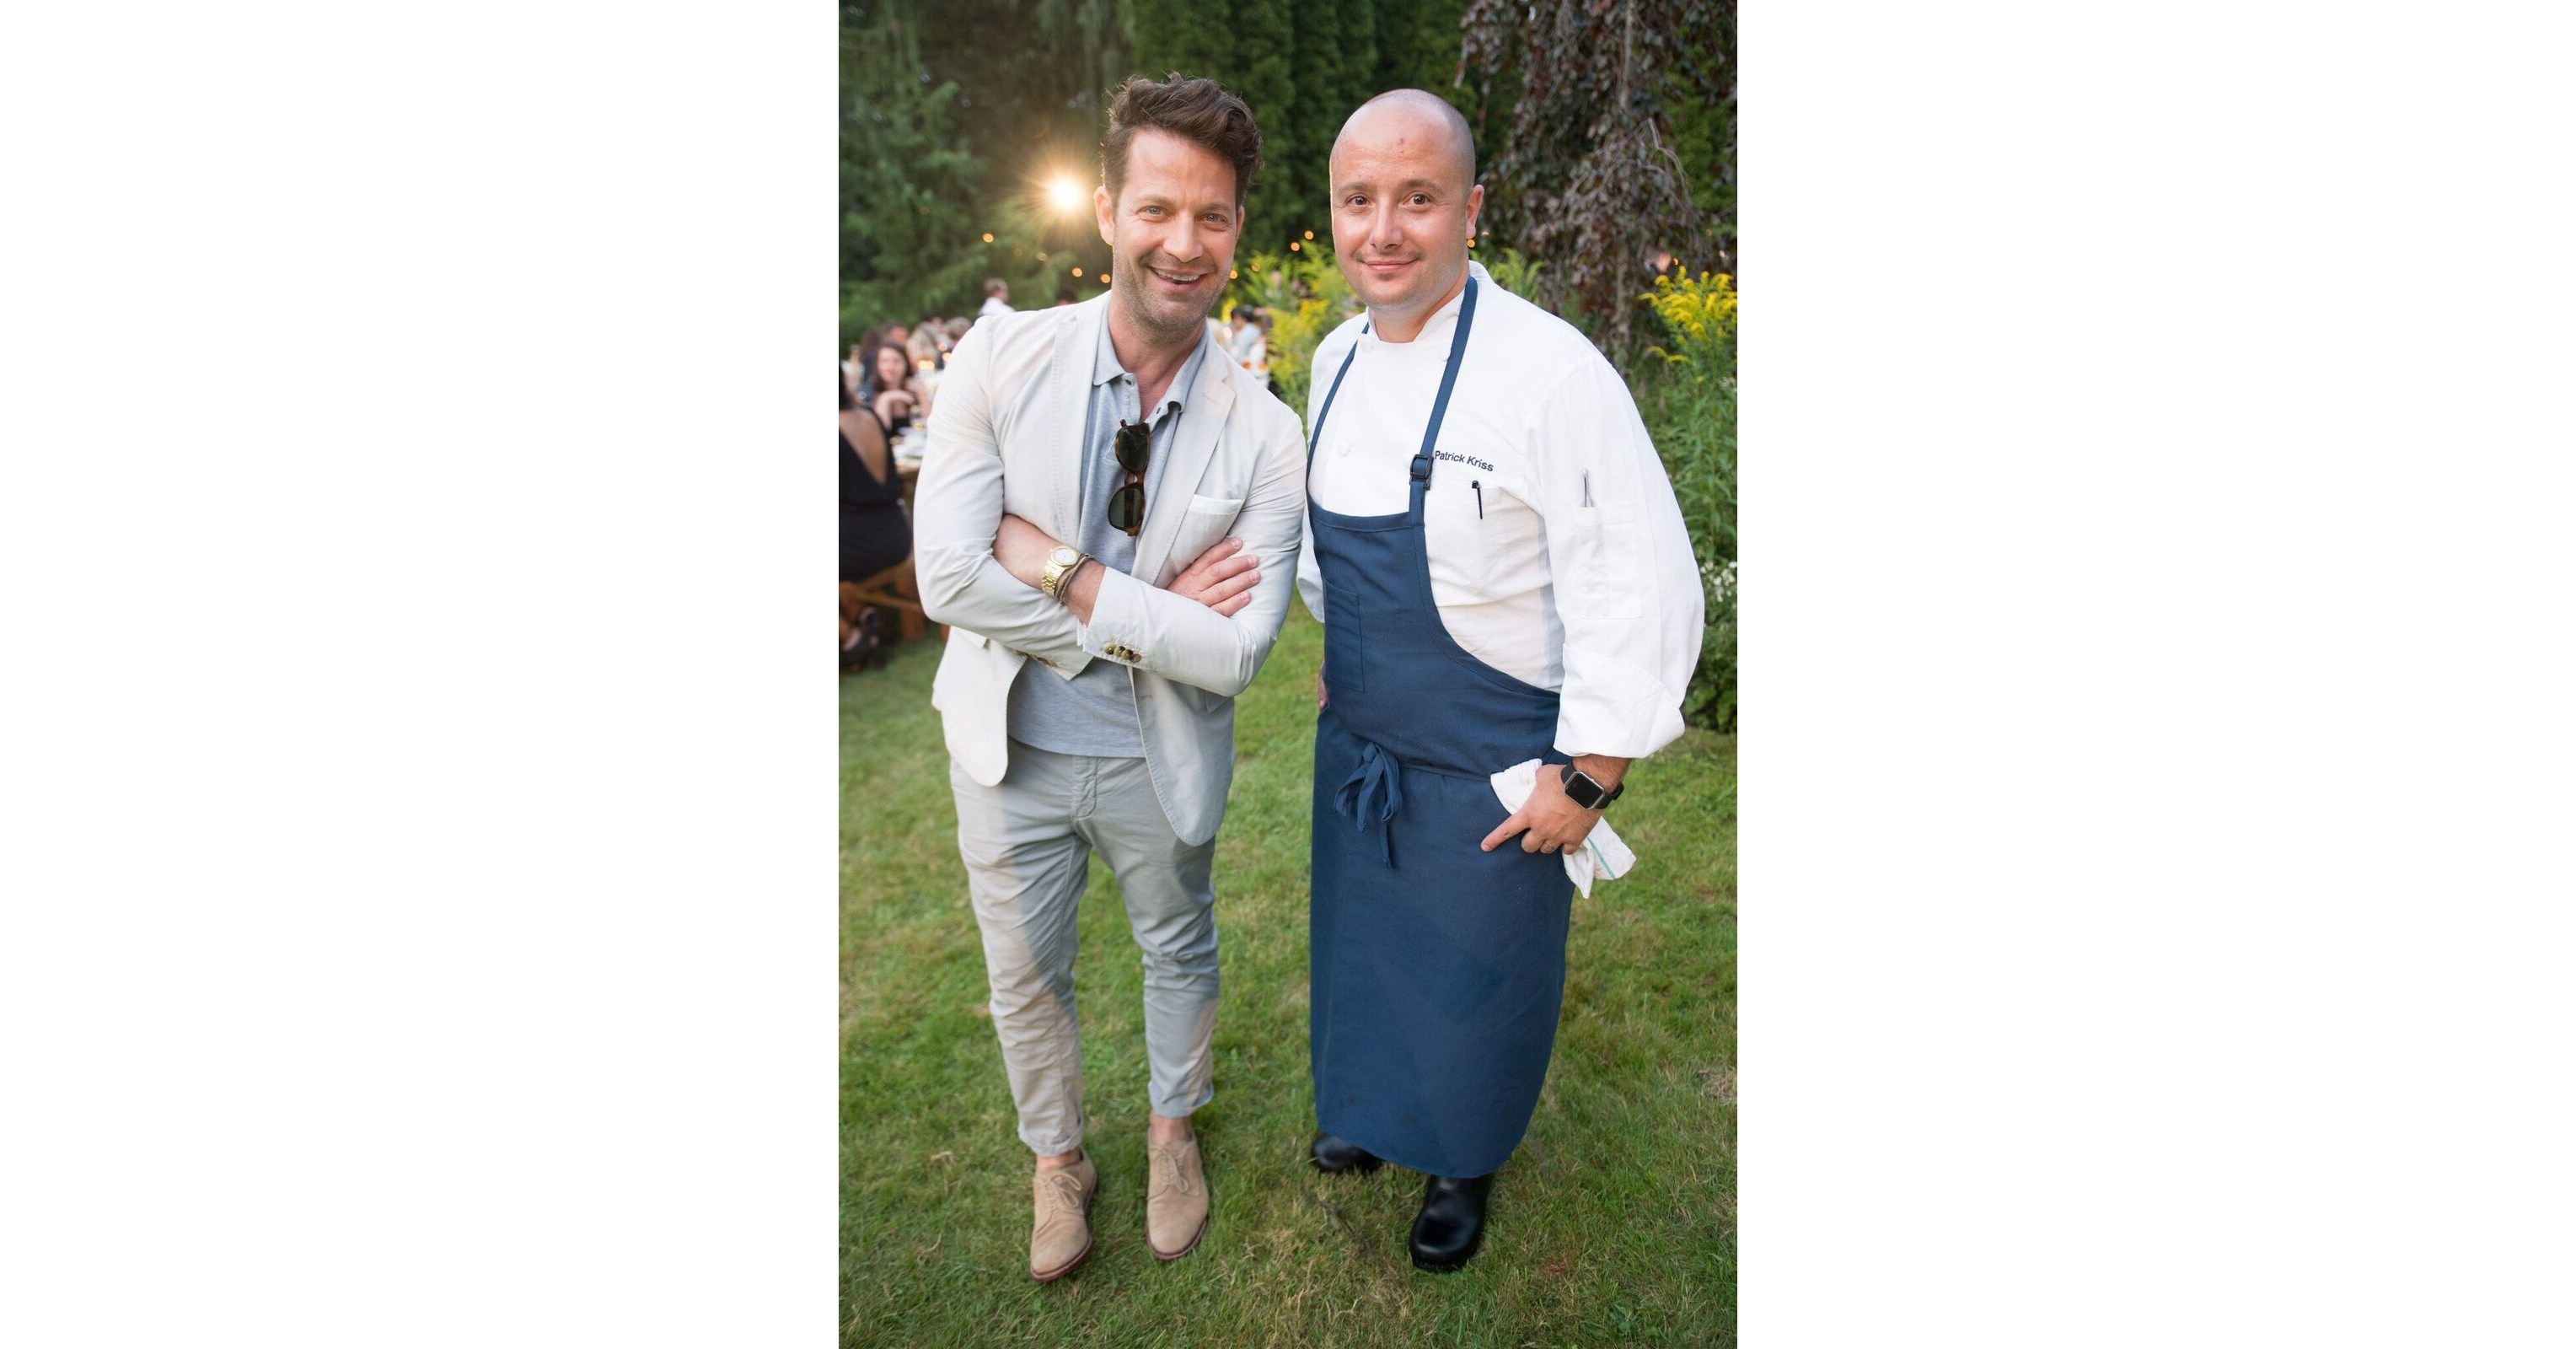 Stella Artois Inspires Canadians To Host One To Remember Through Partnerships With Chefs Plate, Alo Chef Patrick Kriss And Interior Designer Nate Berkus photo